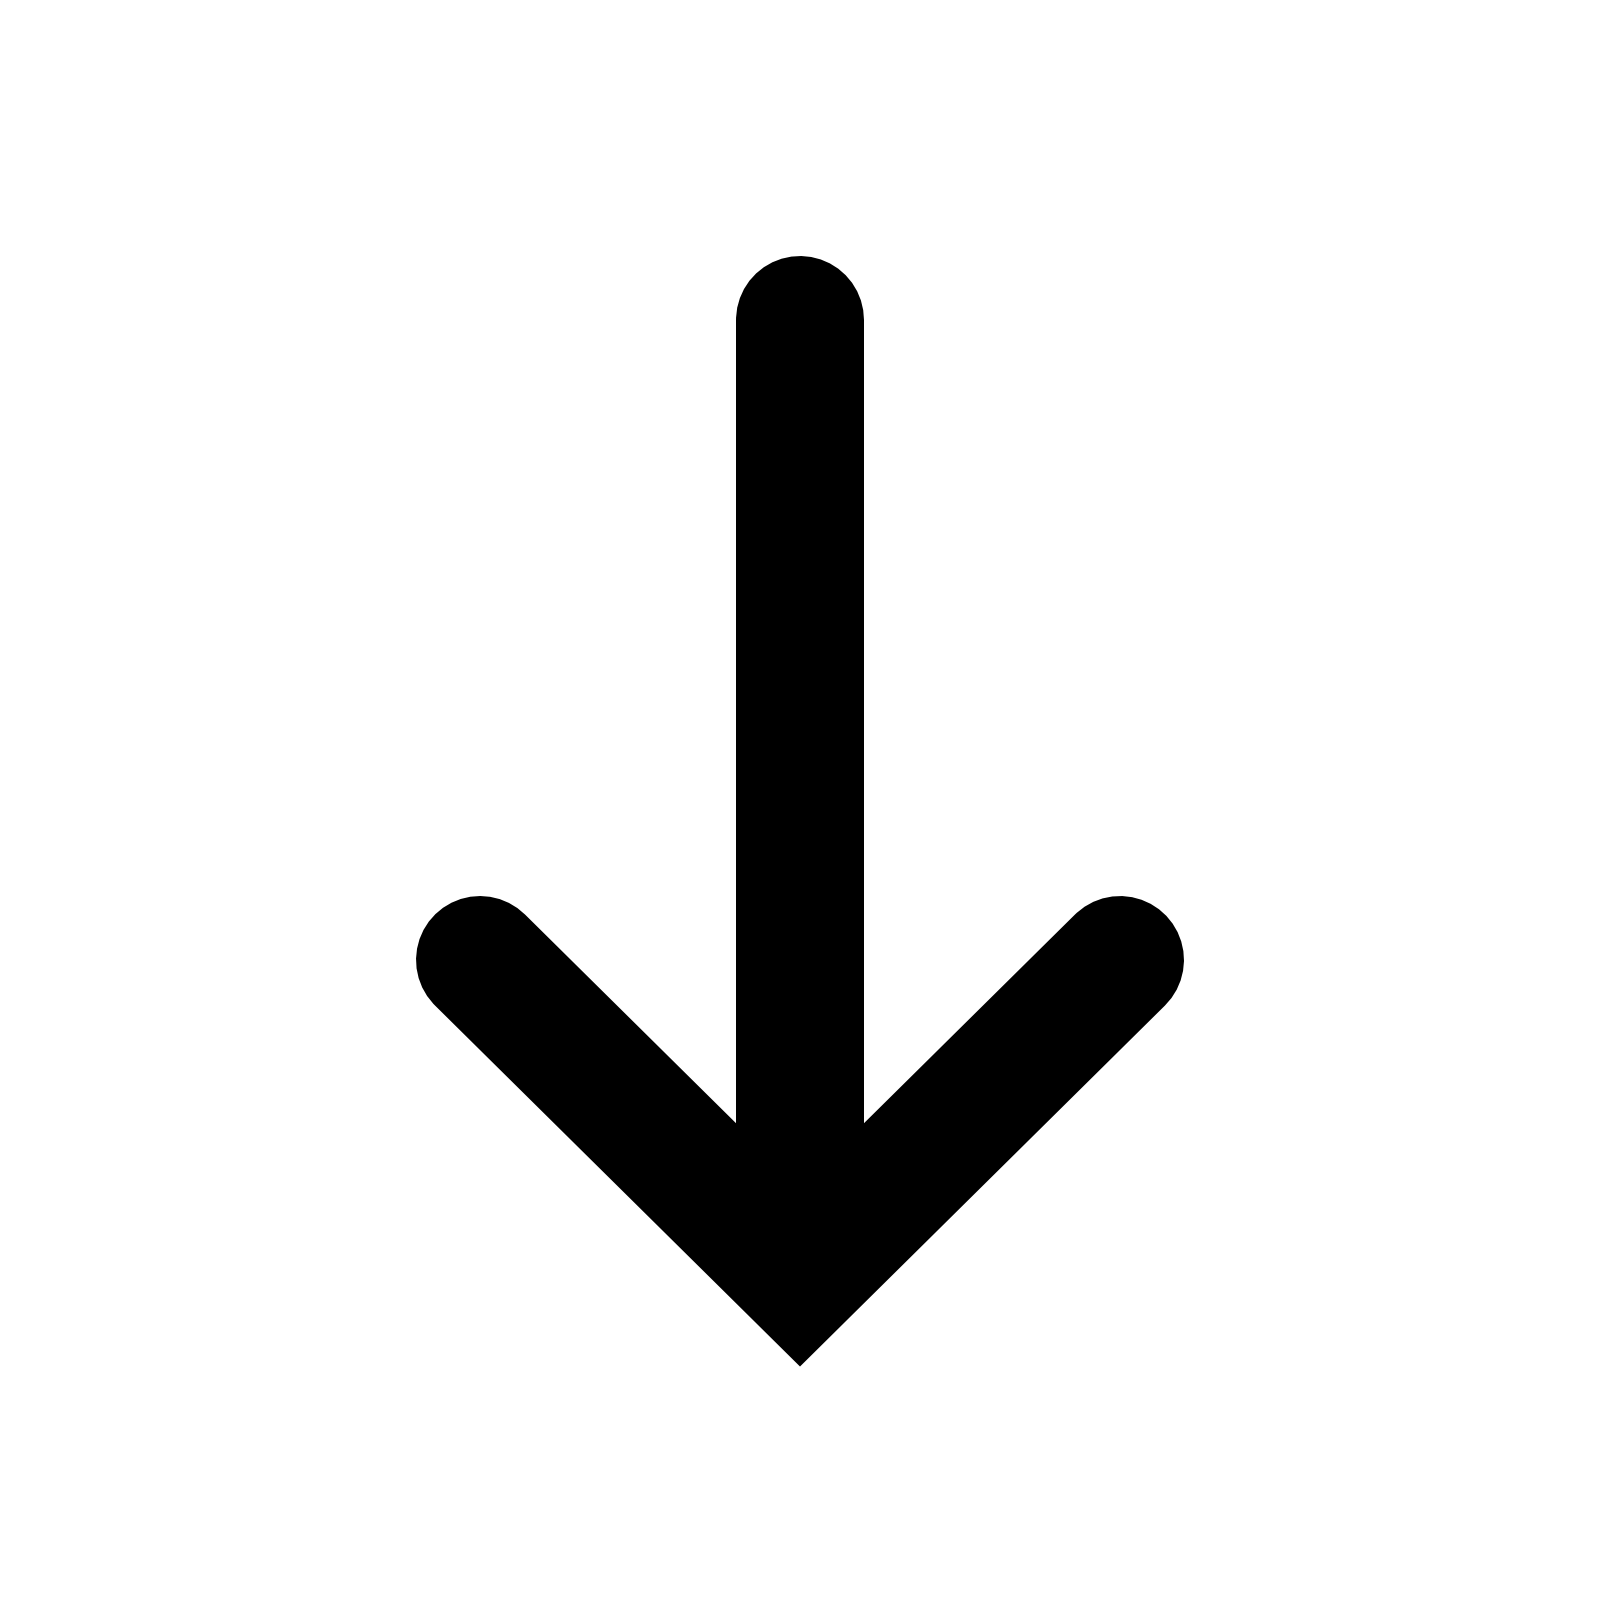 Down Filled icon - Down Arrow PNG